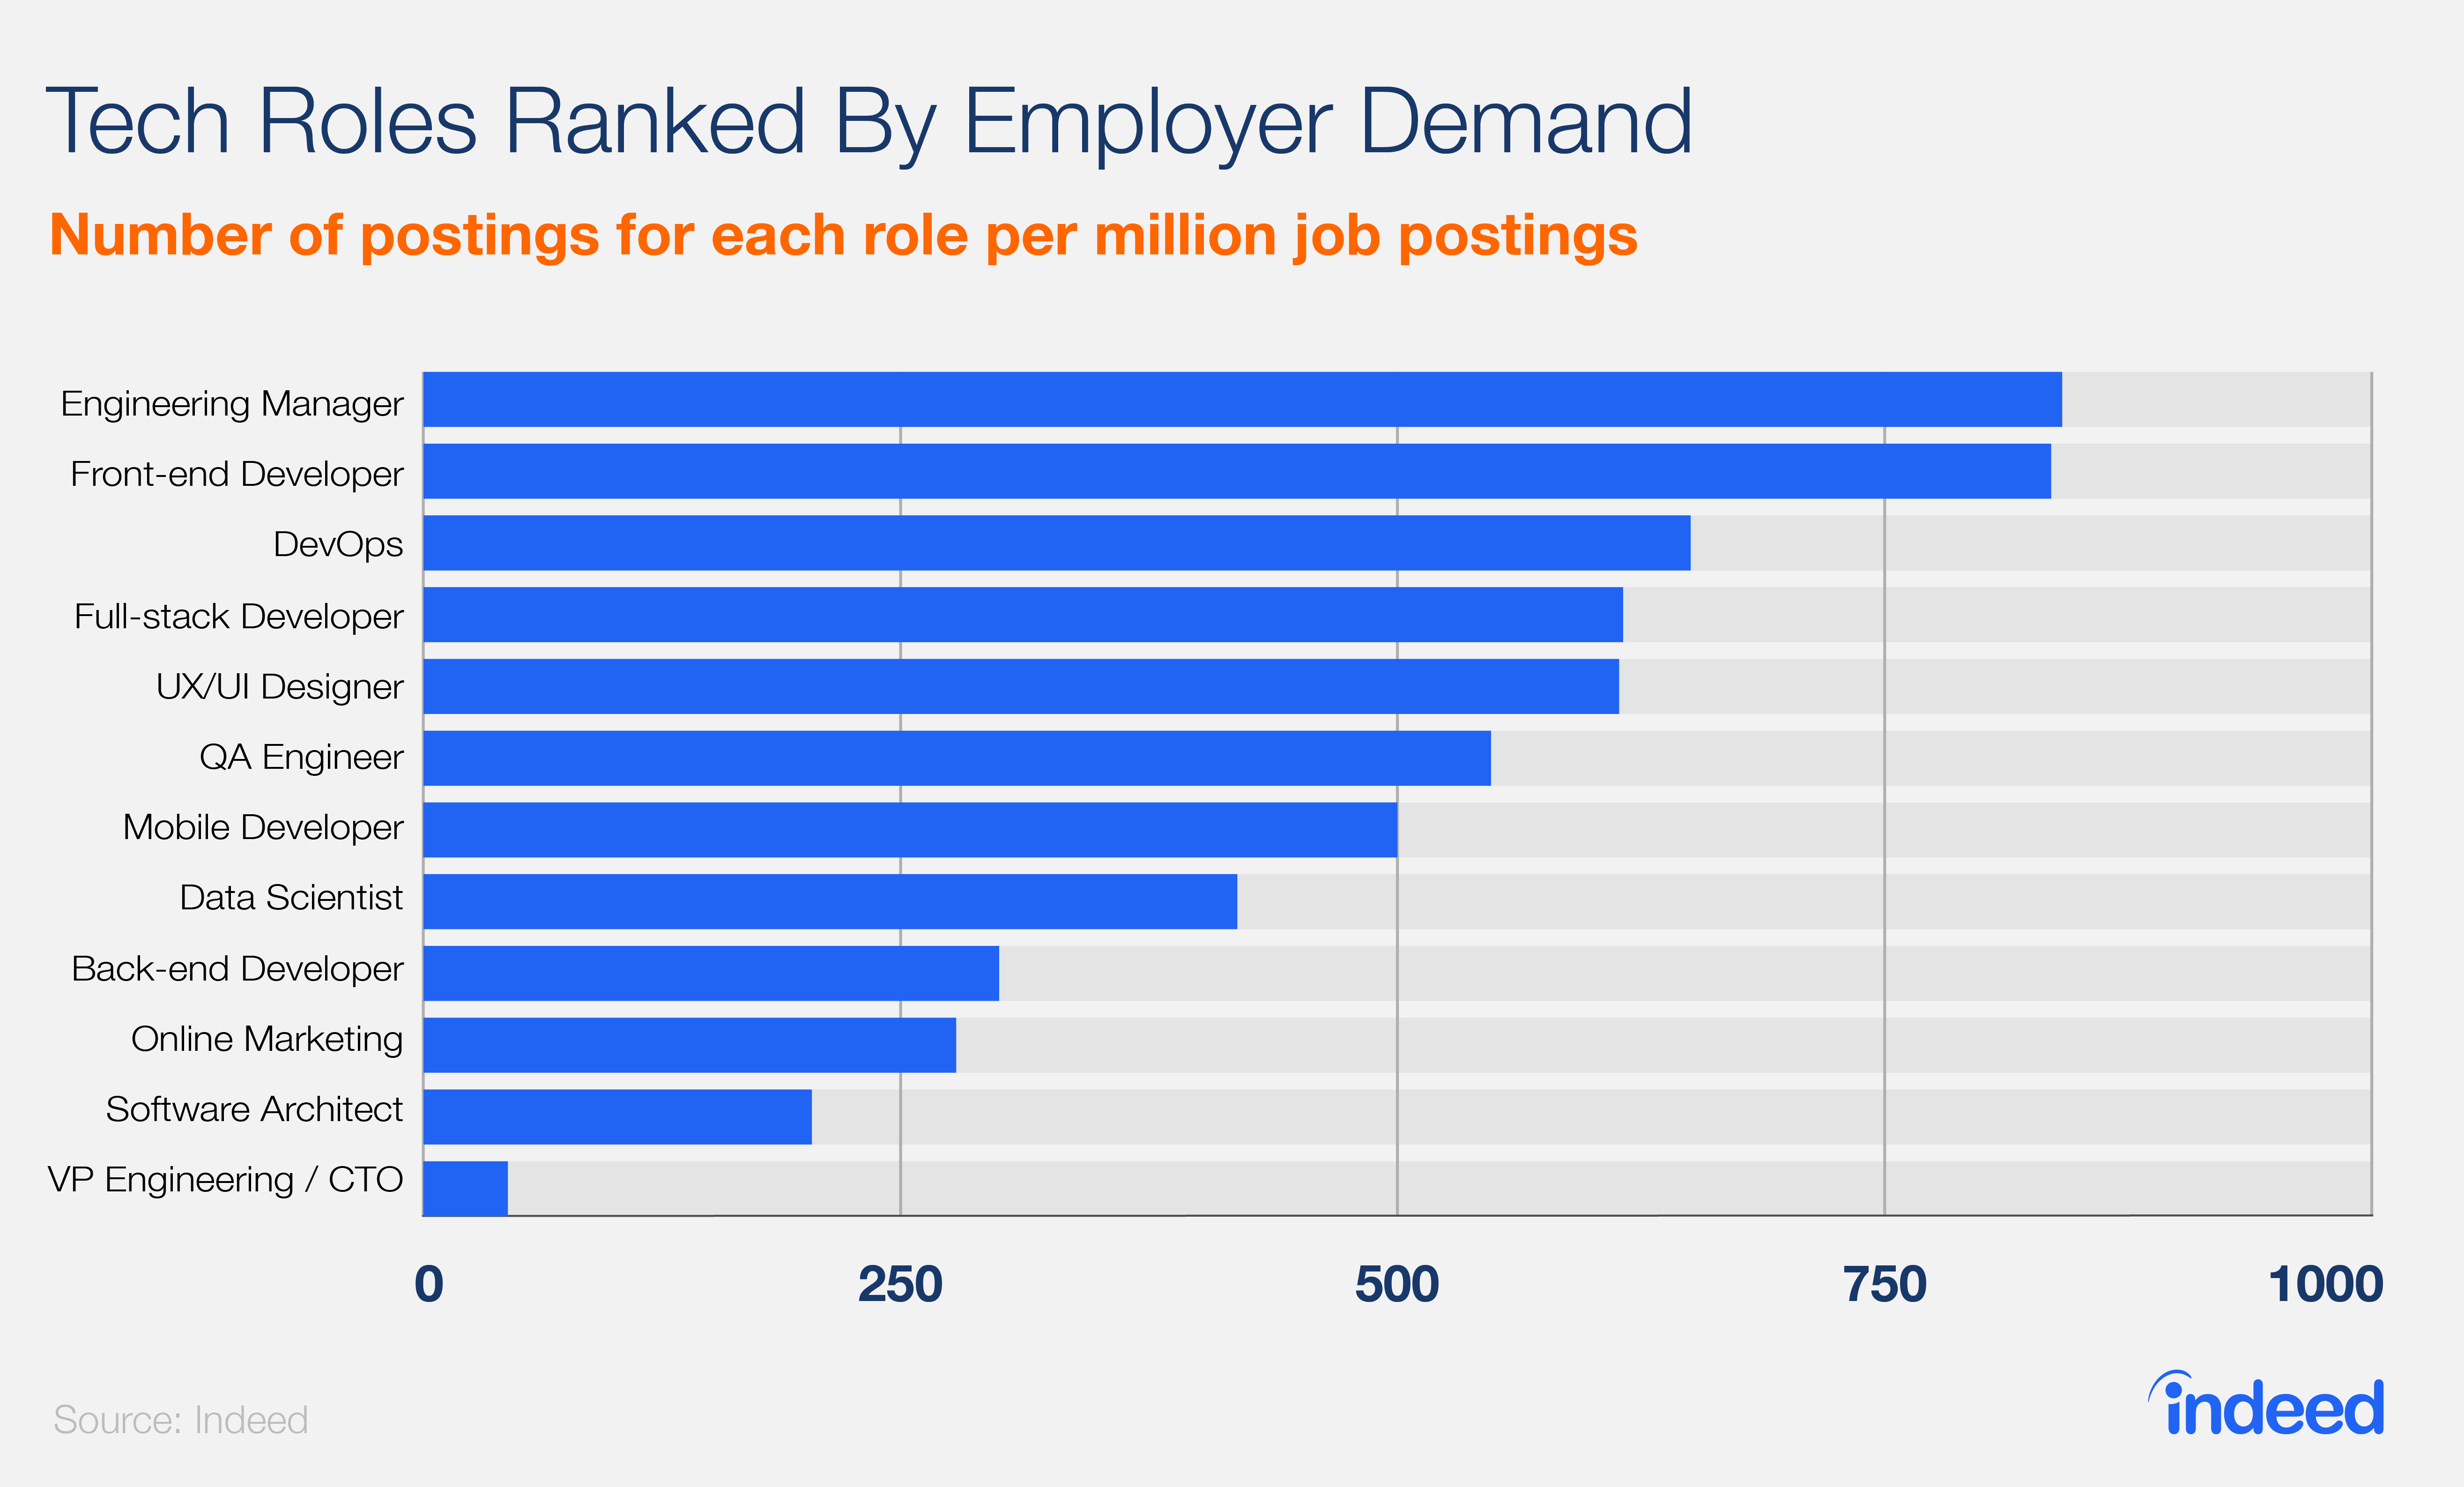 tech_roles_ranked_by_employer_demand